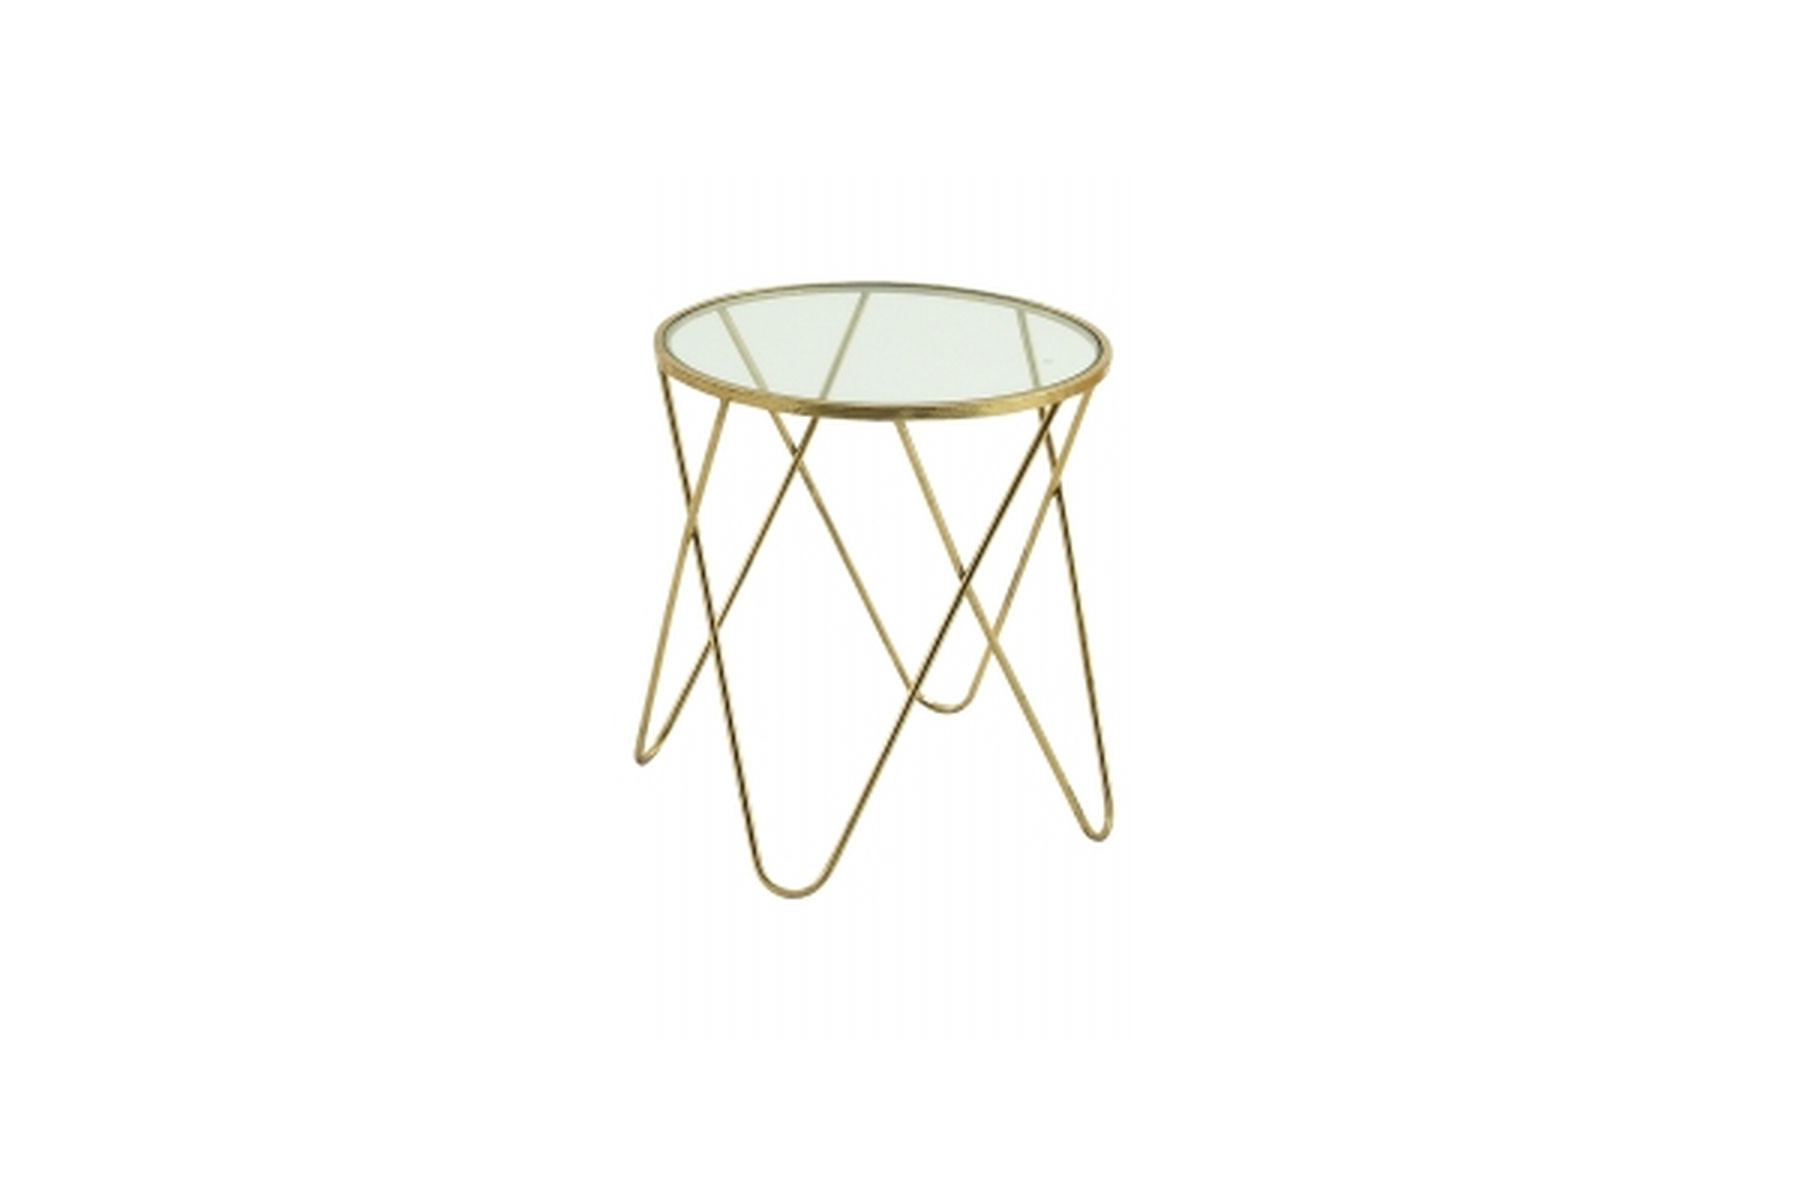 medium metal glass accent table bling lamps small white marble brown room essentials side knobs and handles round living end tables atlantic furniture west elm dining set